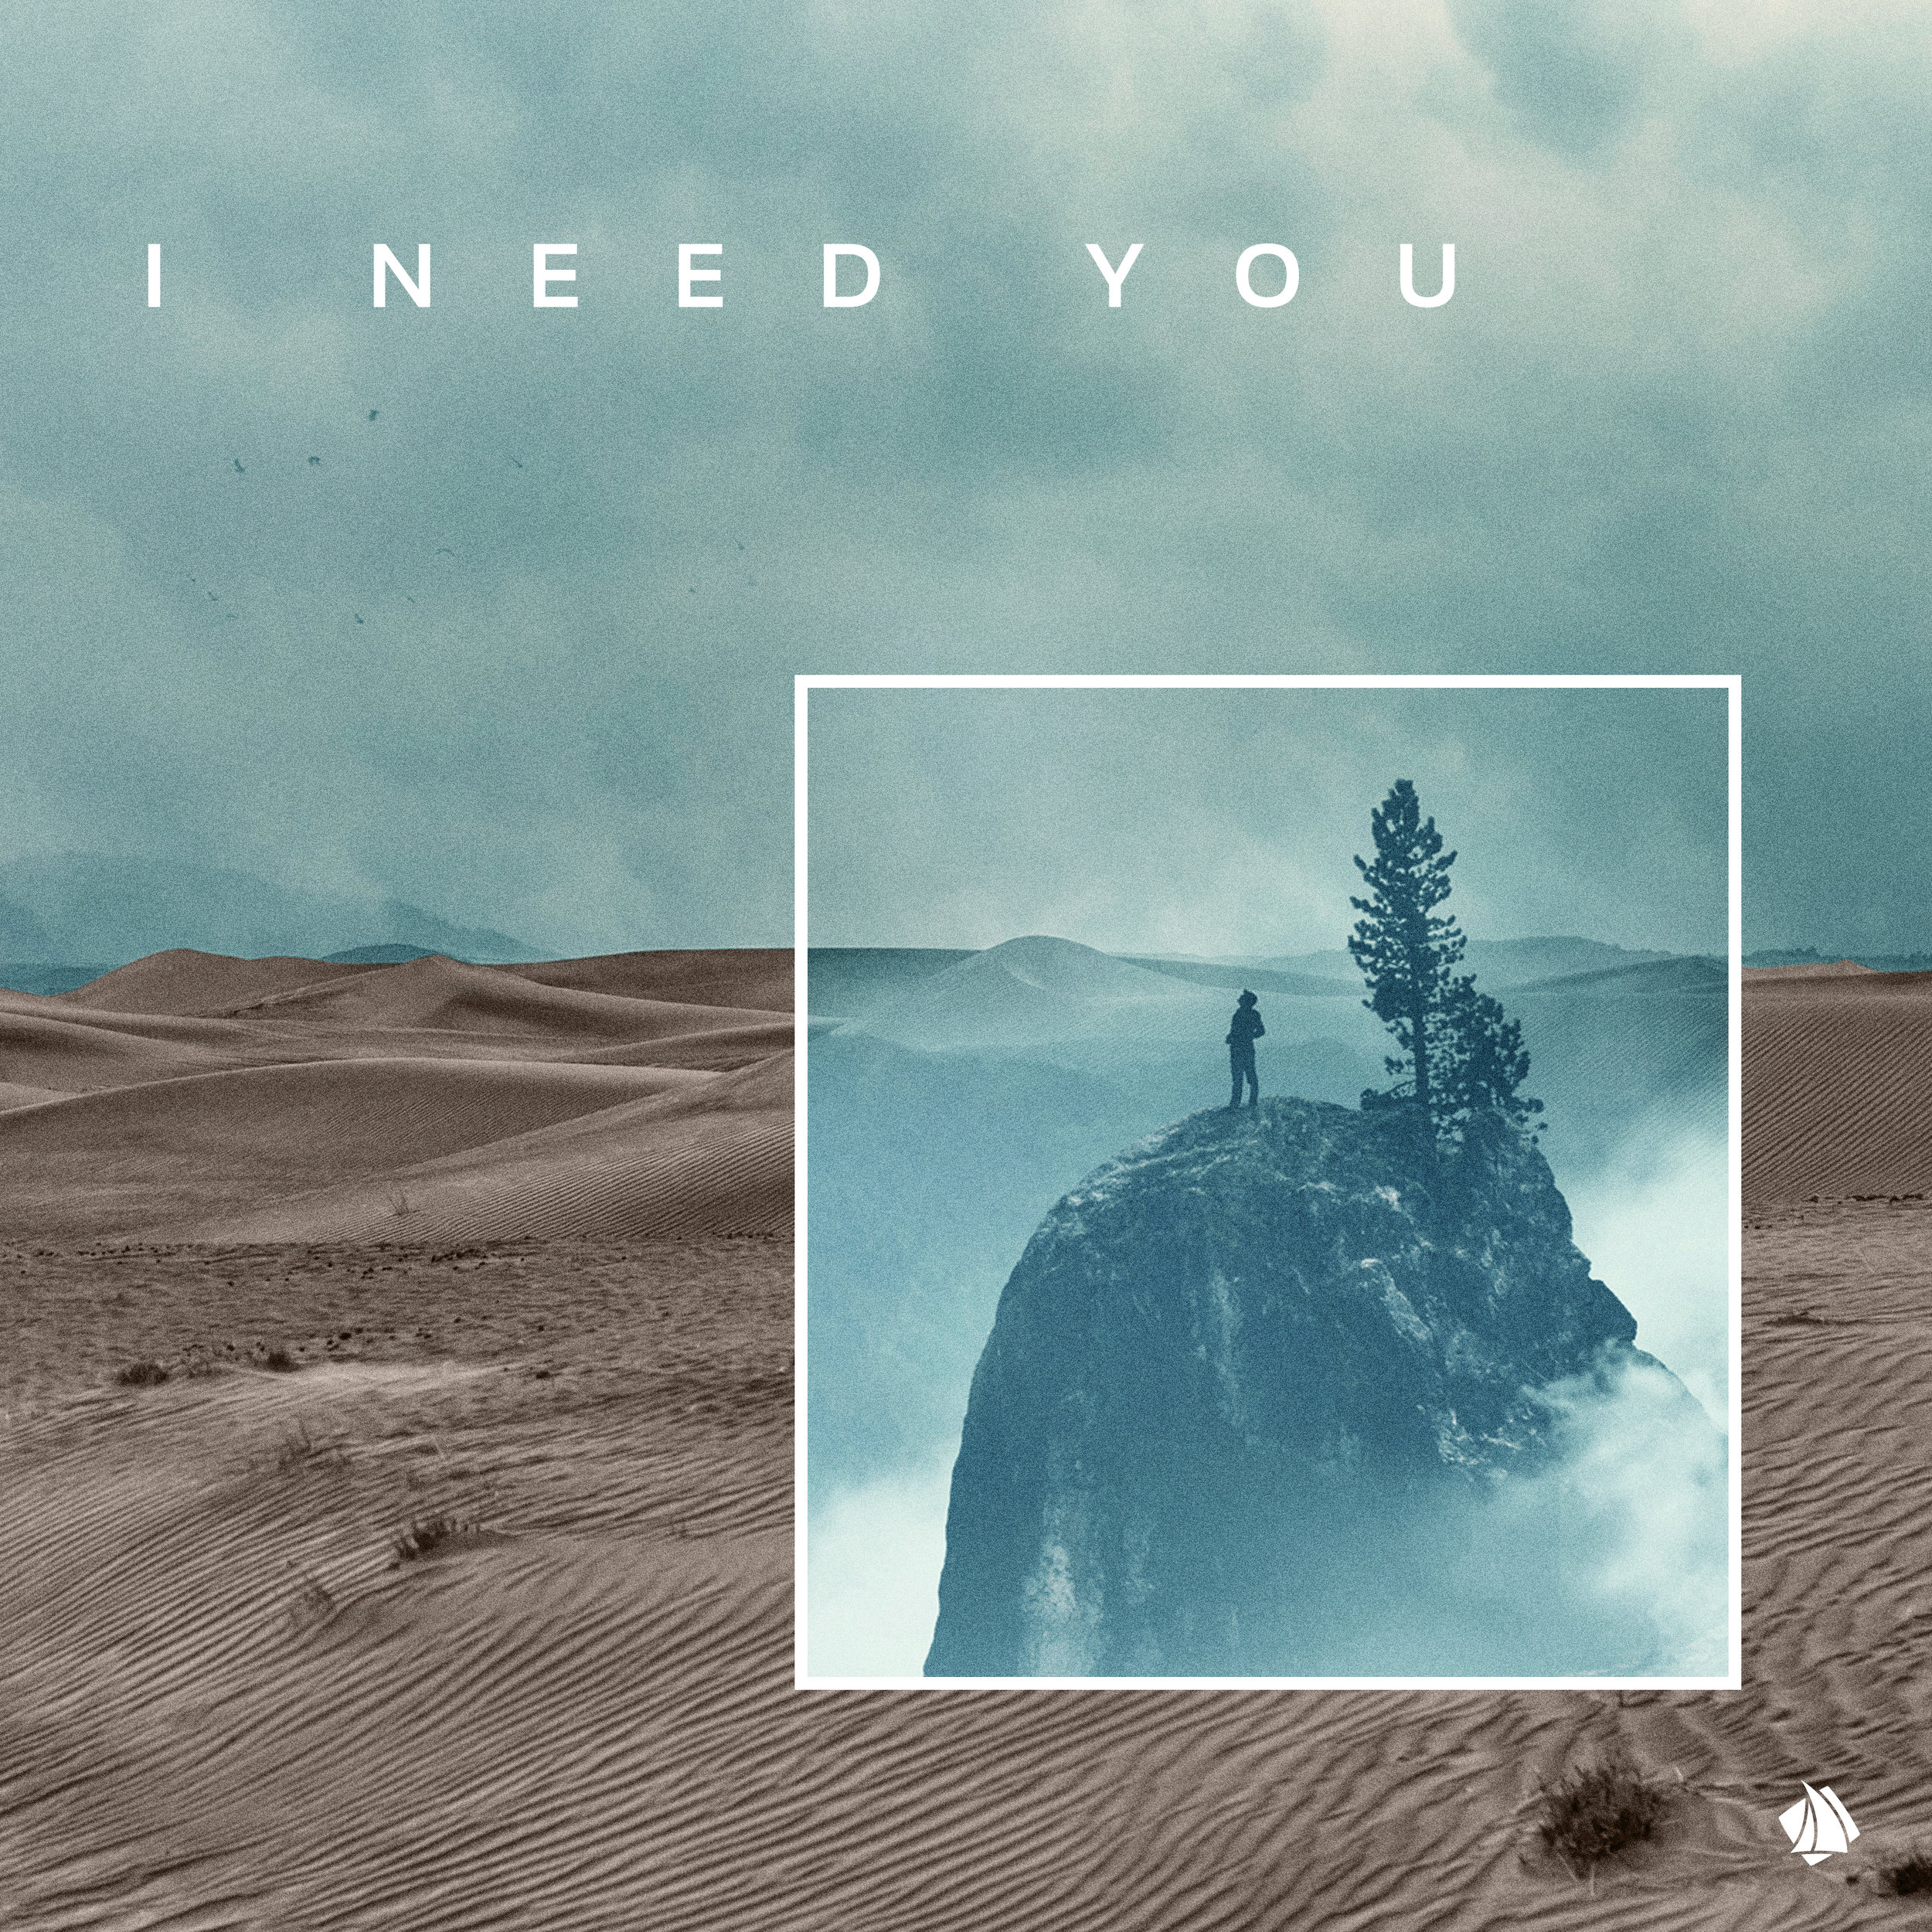 I Need You (Single) - Download everything you need to lead I Need You, our latest single, including chord charts, lyrics, and tracks. Contact us if you have questions or need anything else!